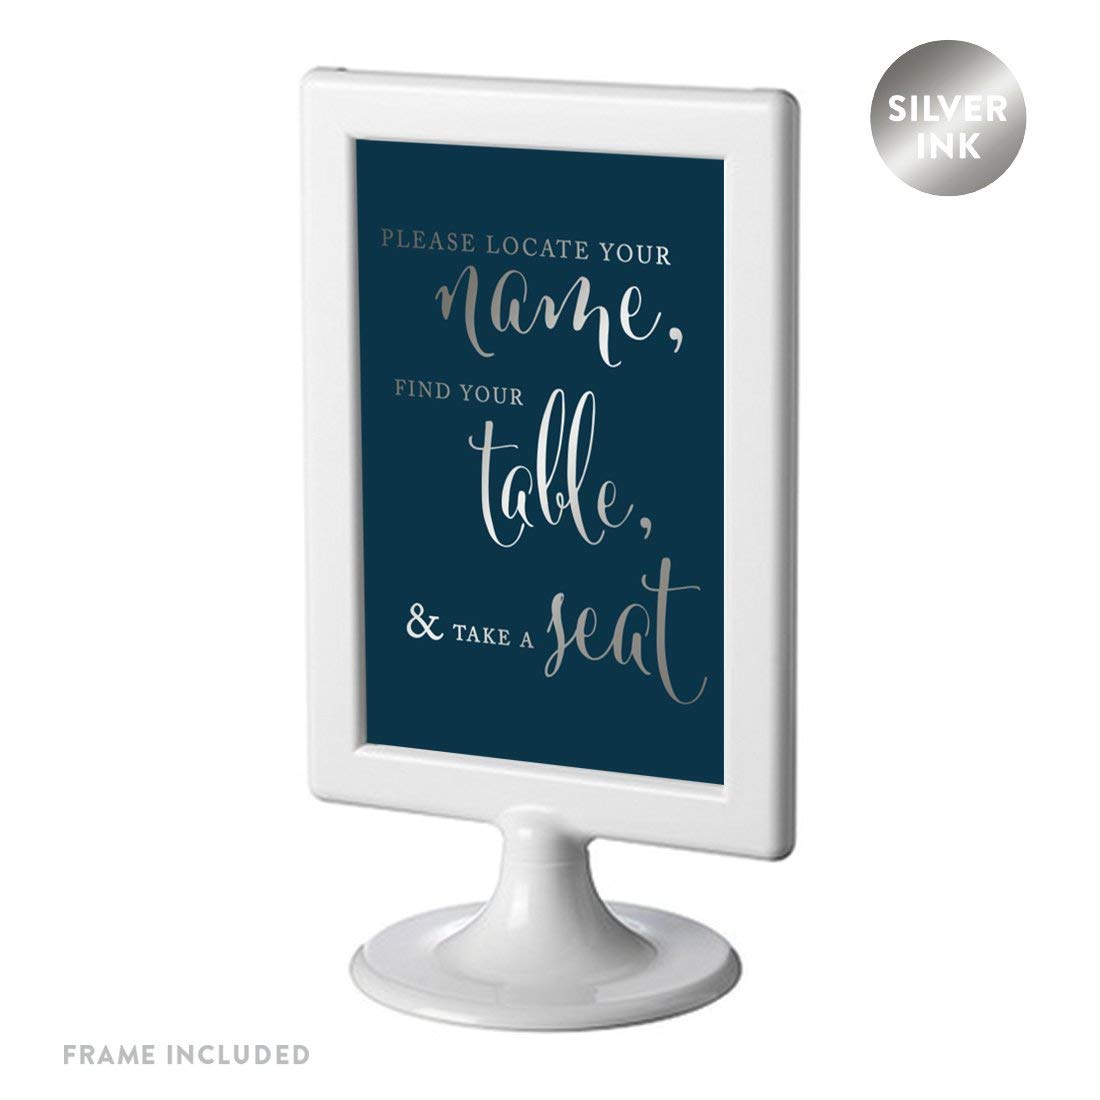 Andaz Press Framed Wedding Party Signs, Metallic Silver Ink on Navy Blue, 4x6-inch, Please Locate Your Name, Find Your Table, & Take a Seat, 1-Pack